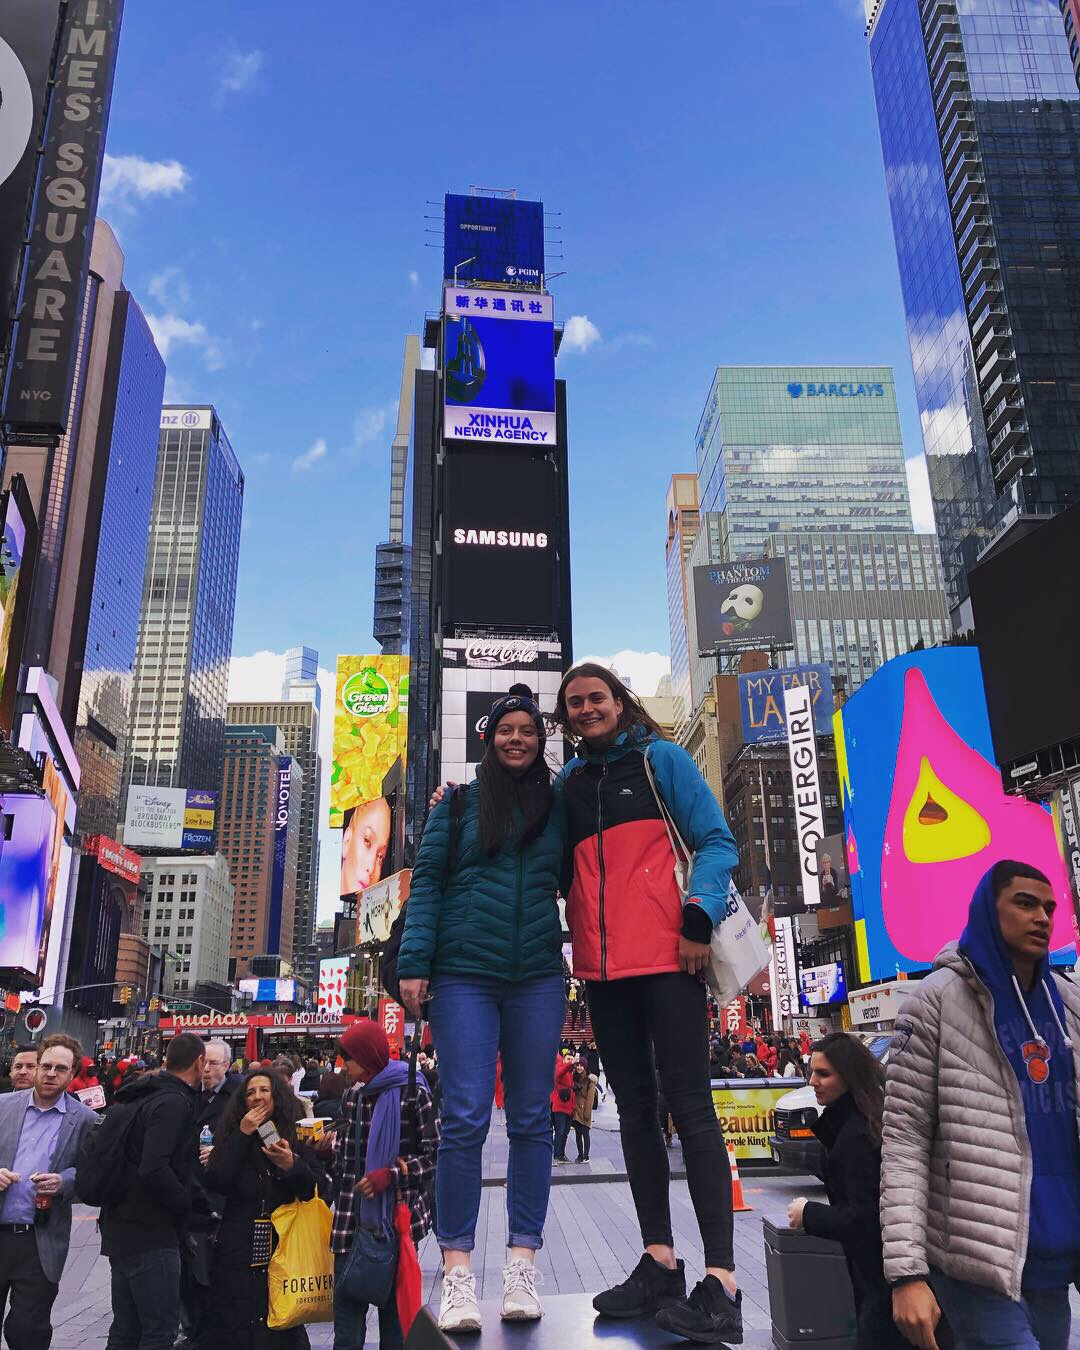 Times Square | free - One of the most talked about places in New York! The colours, the screens, the close-by Madison Square Garden… a must visit day or night!